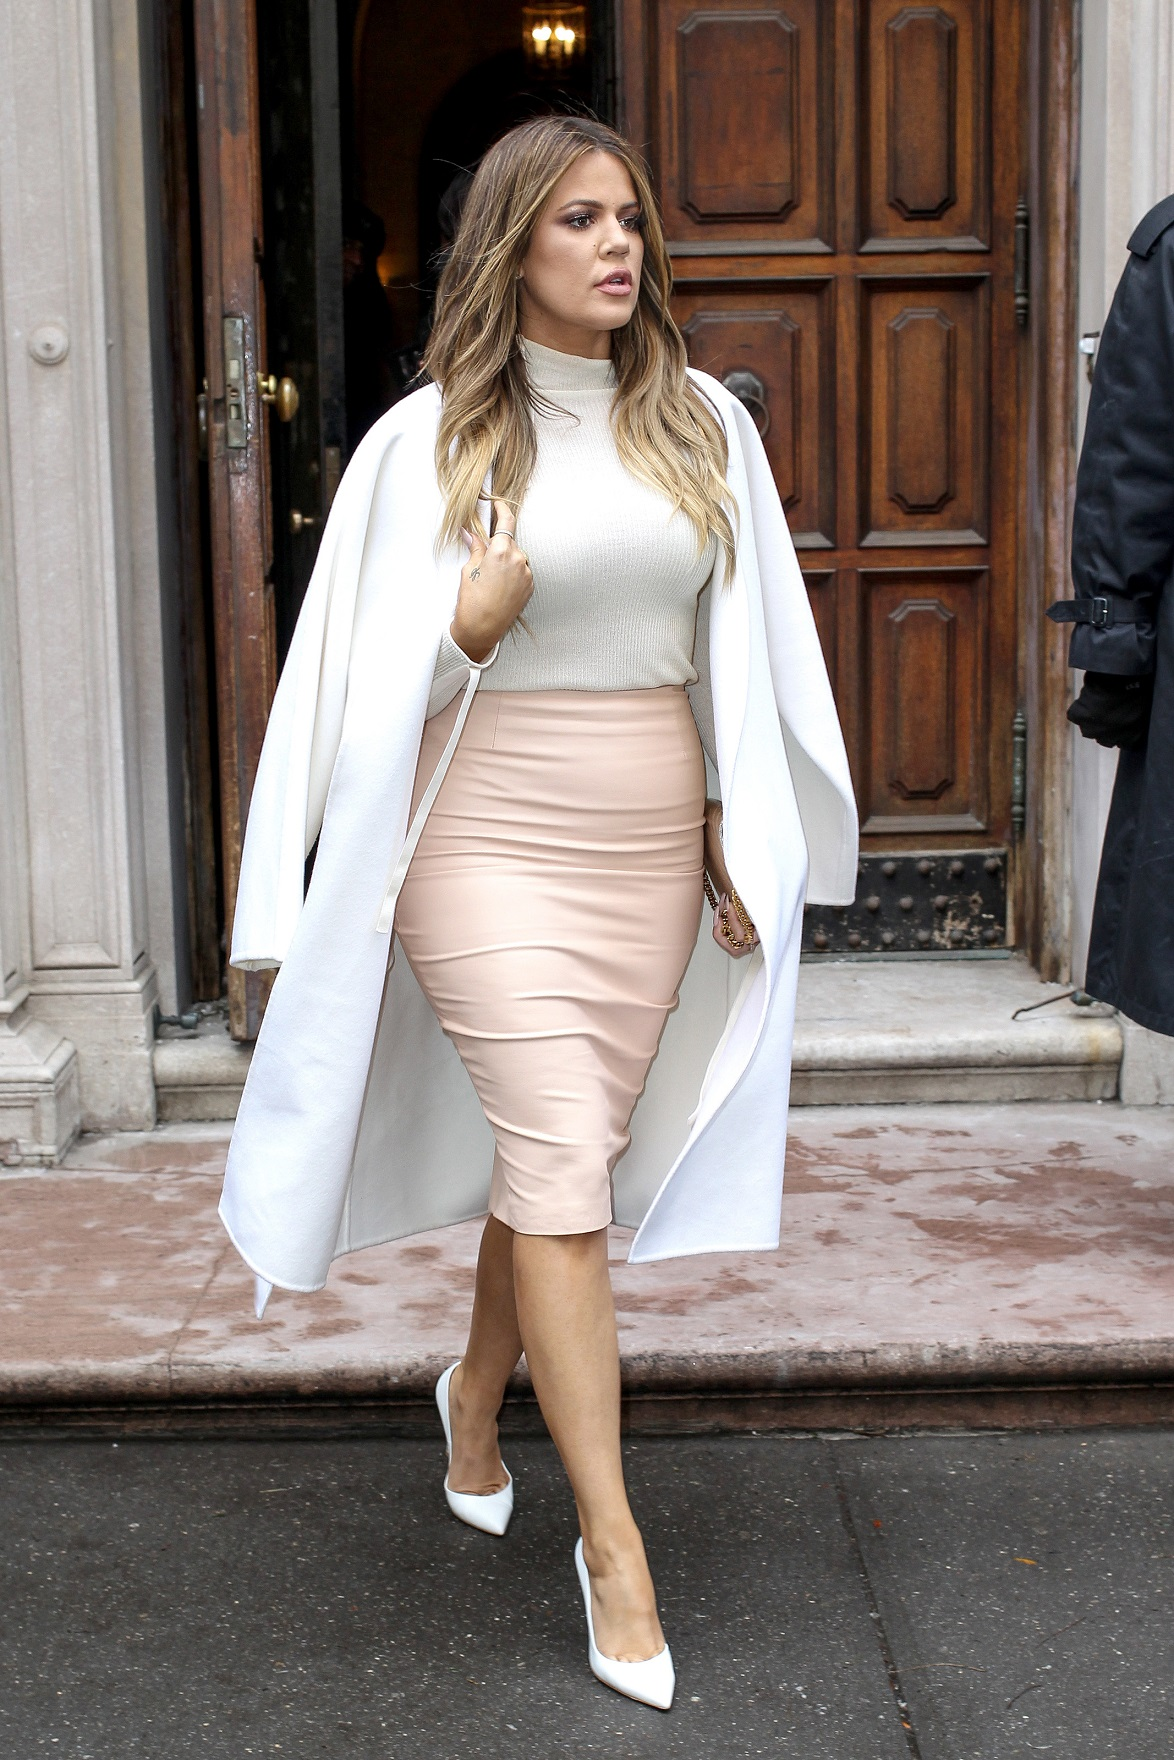 New York, NY - Kardashian sisters Kim and Khloe headed out of an event in NYC on Tuesday, looking amazing while rocking coordinated muted shades. Kim showed off her new cropped 'do while donning a head-to-toe snakeskin ensemble, while Khloe looked pretty in pink in a pale blush-colored pencil skirt, paired with a white trench and white pumps. AKM-GSI February 10, 2015 To License These Photos, Please Contact : Steve Ginsburg (310) 505-8447 (323) 423-9397 steve@akmgsi.com sales@akmgsi.com or Maria Buda (917) 242-1505 mbuda@akmgsi.com ginsburgspalyinc@gmail.com